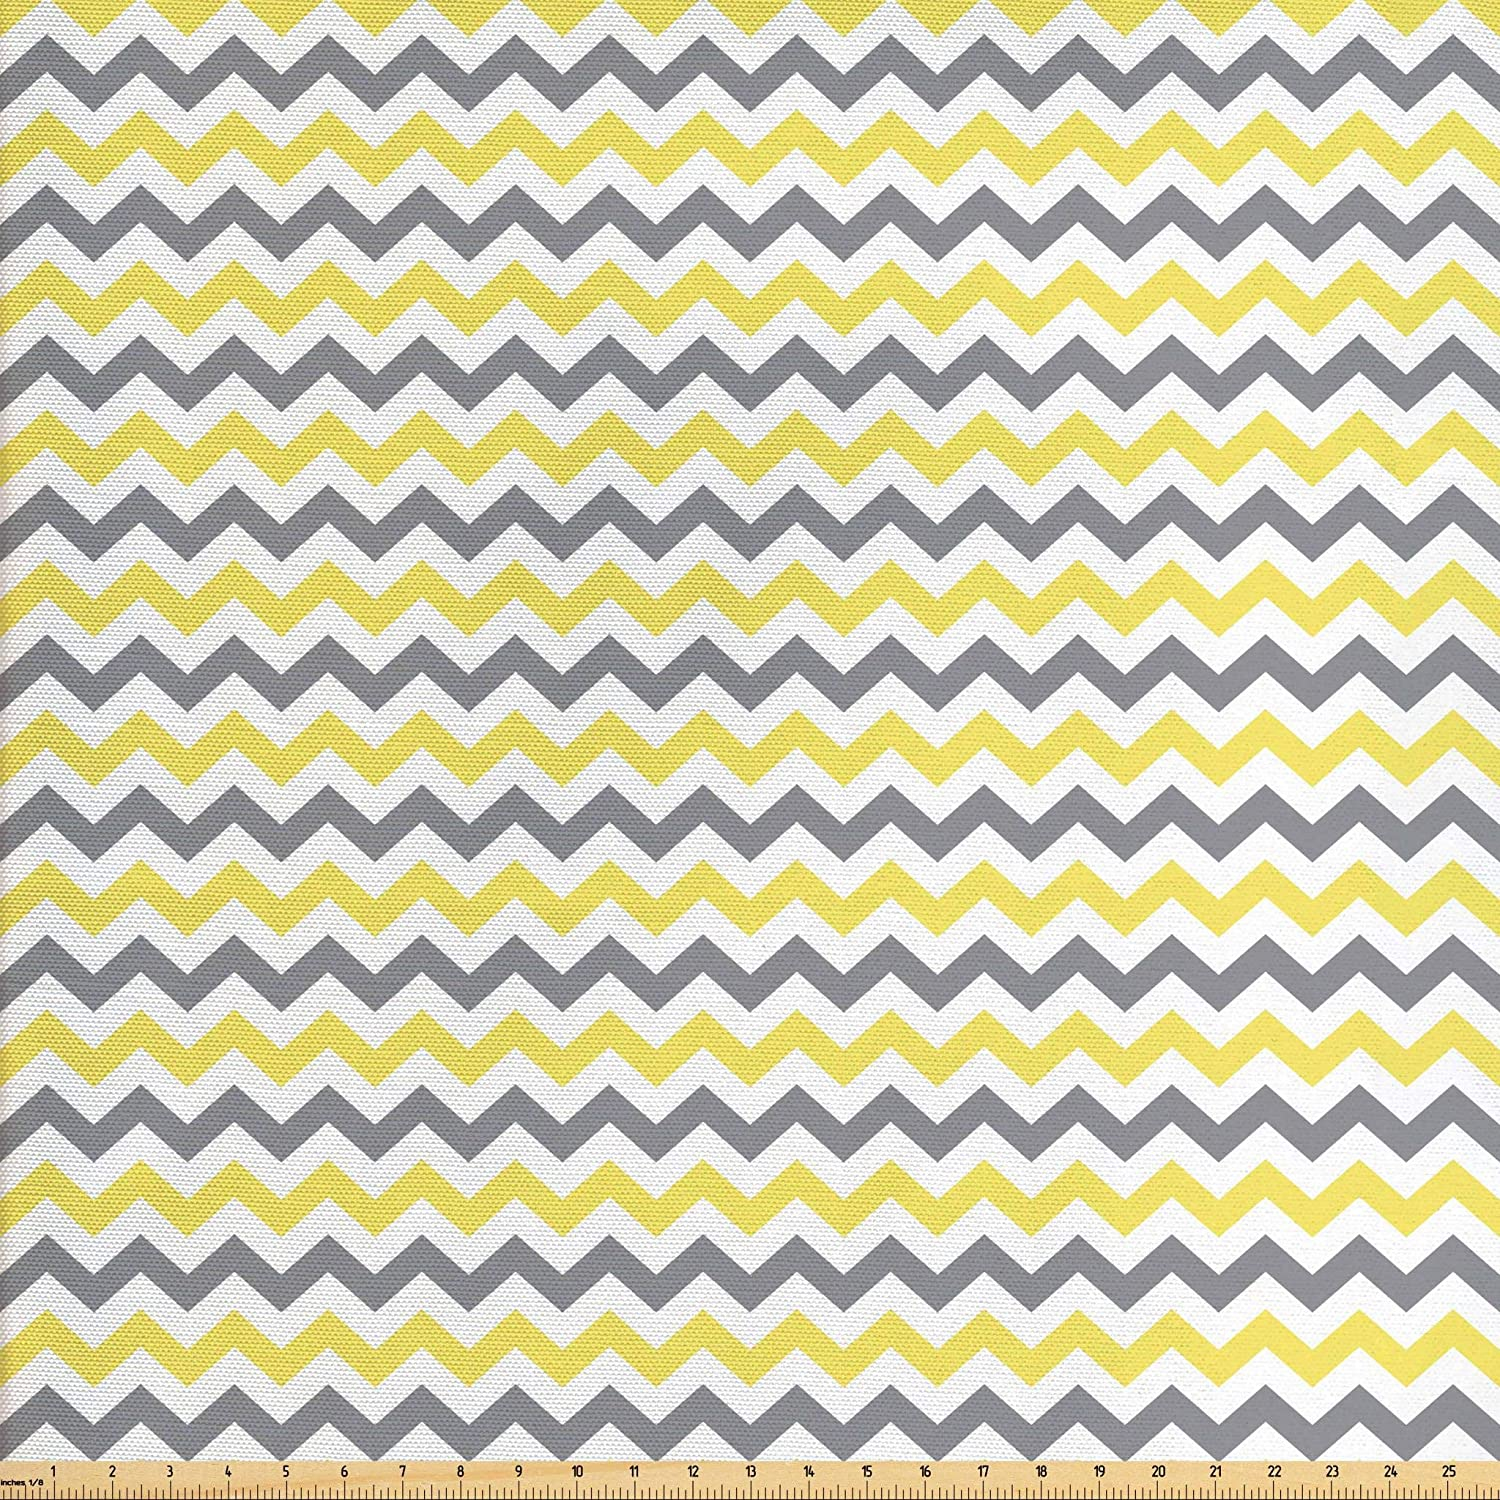 Lunarable Geometric Fabric by The Yard, Horizontal Chevron Pattern Zigzag Endless Simplicity Design Print, Decorative Fabric for Upholstery and Home Accents, 1 Yard, Yellow White